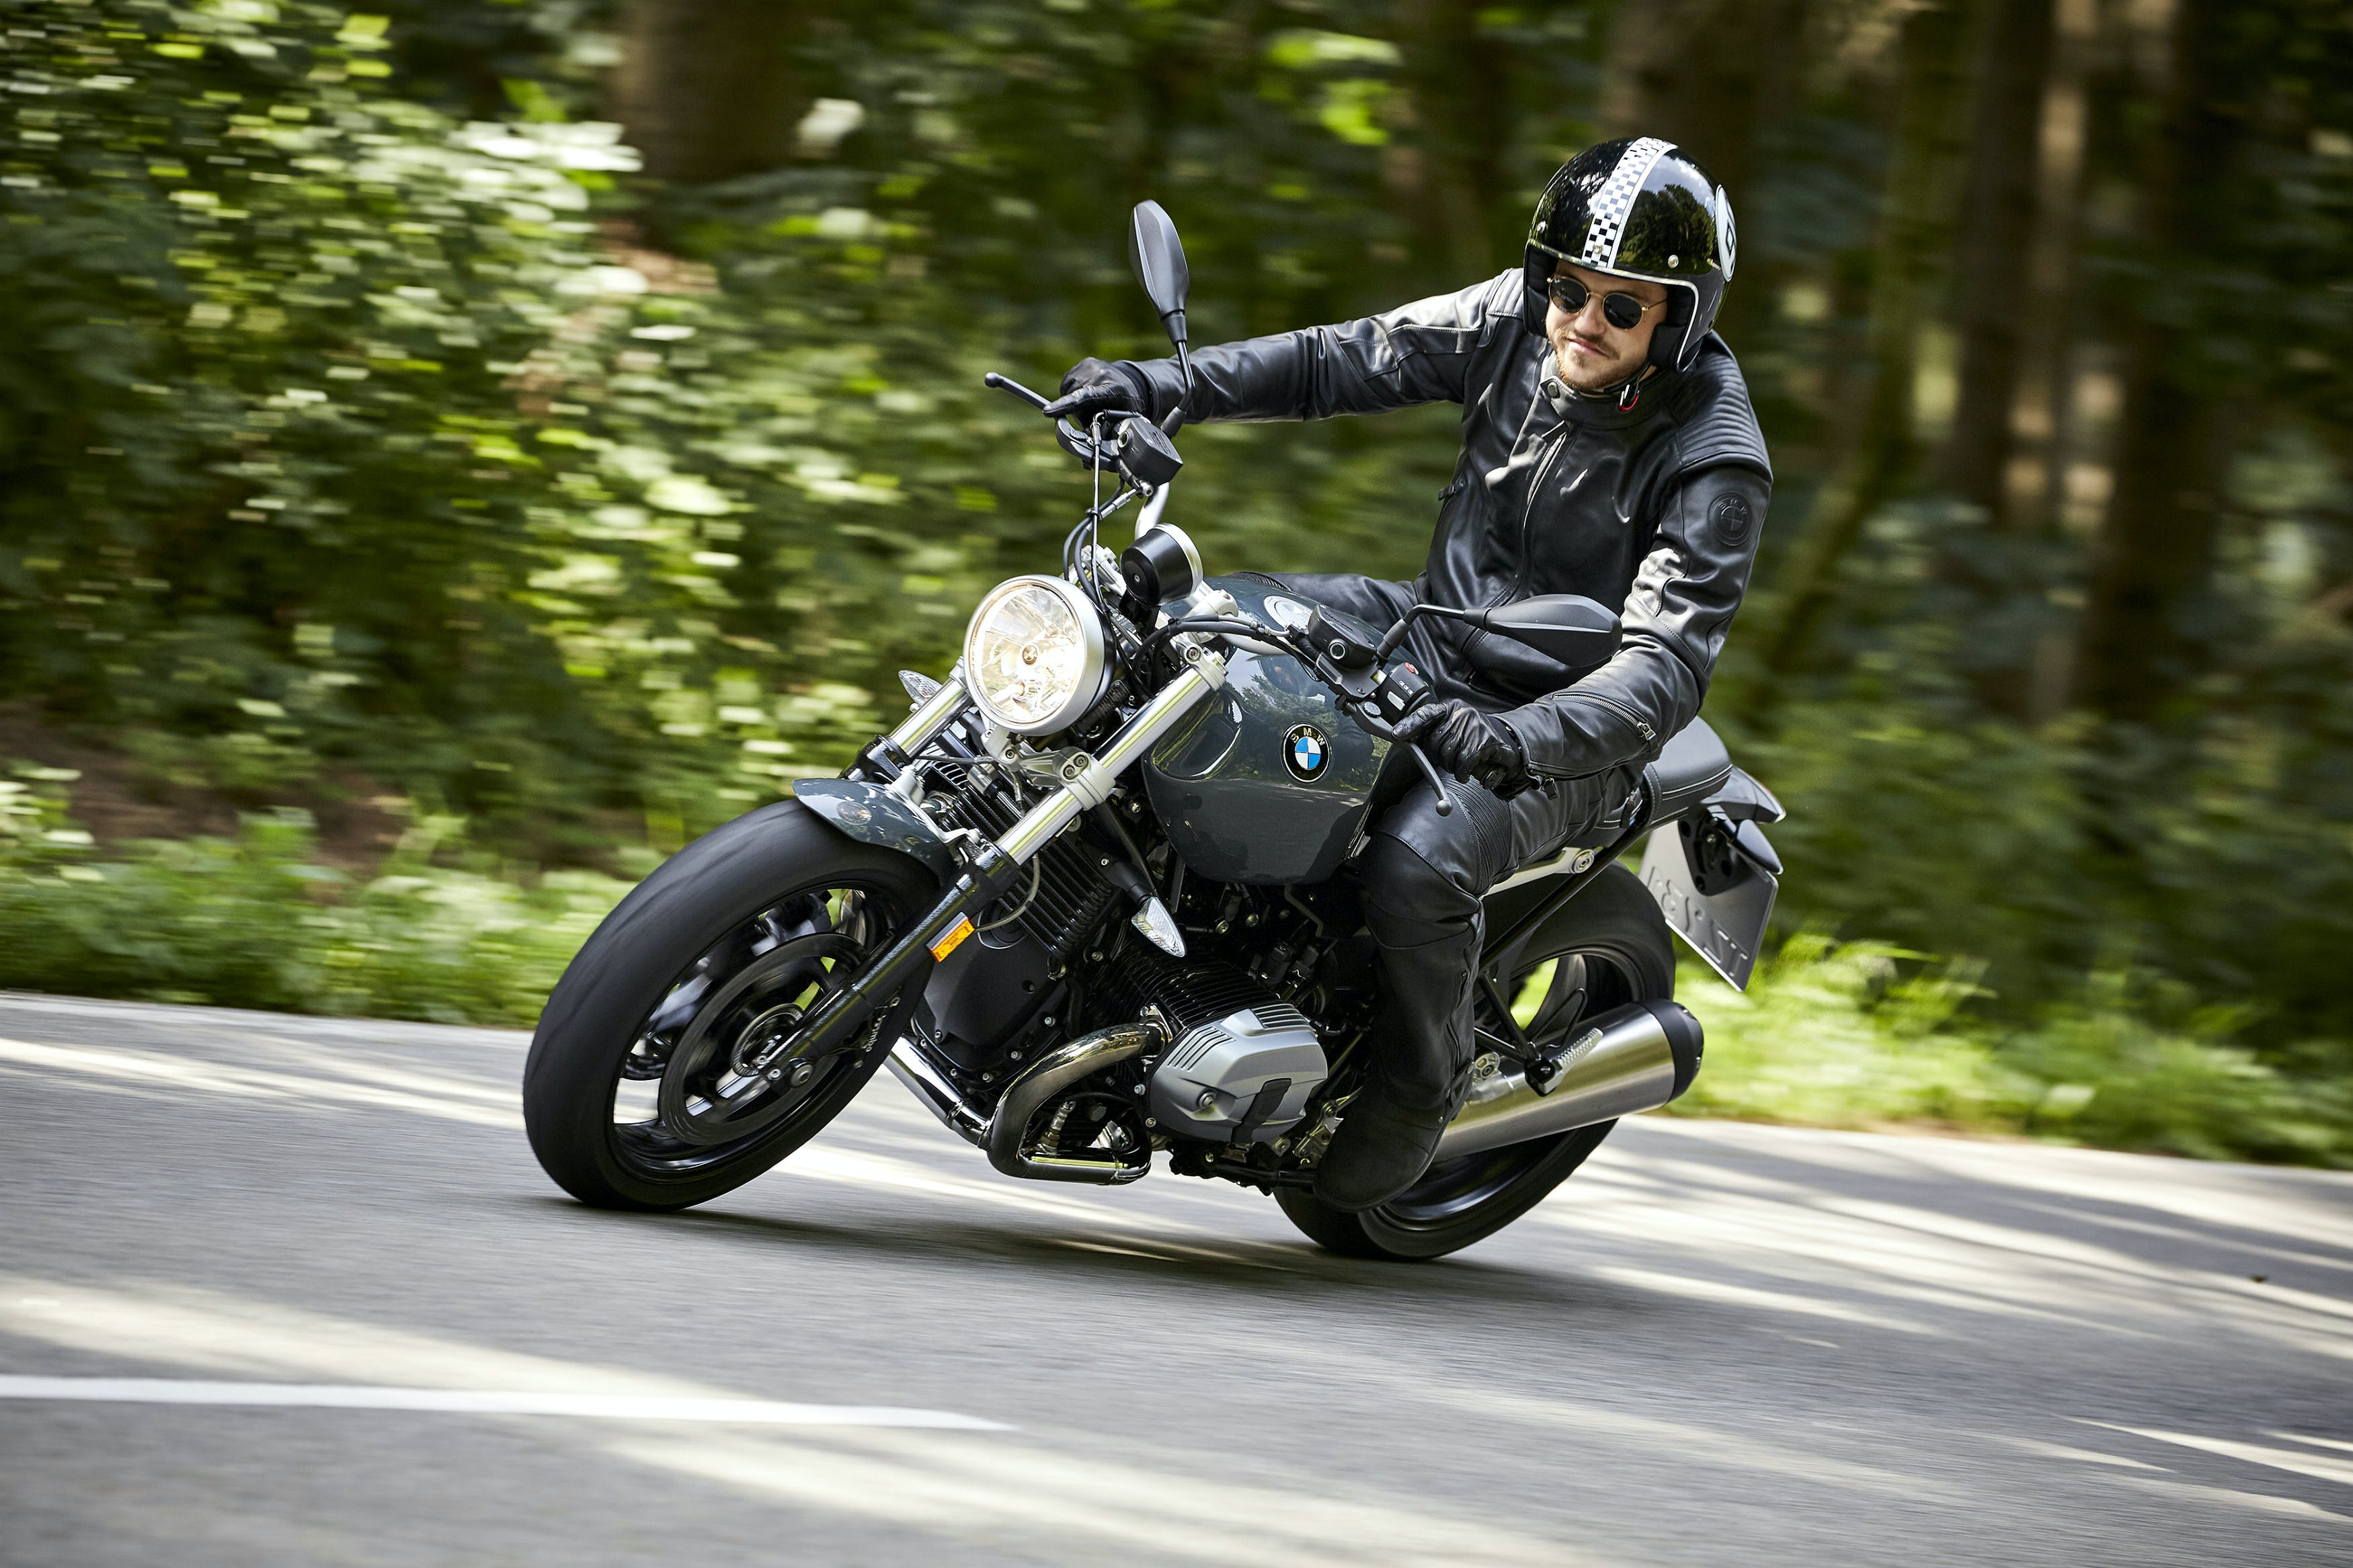 BMW R NINET PURE SPEZIAL being ridden on the road